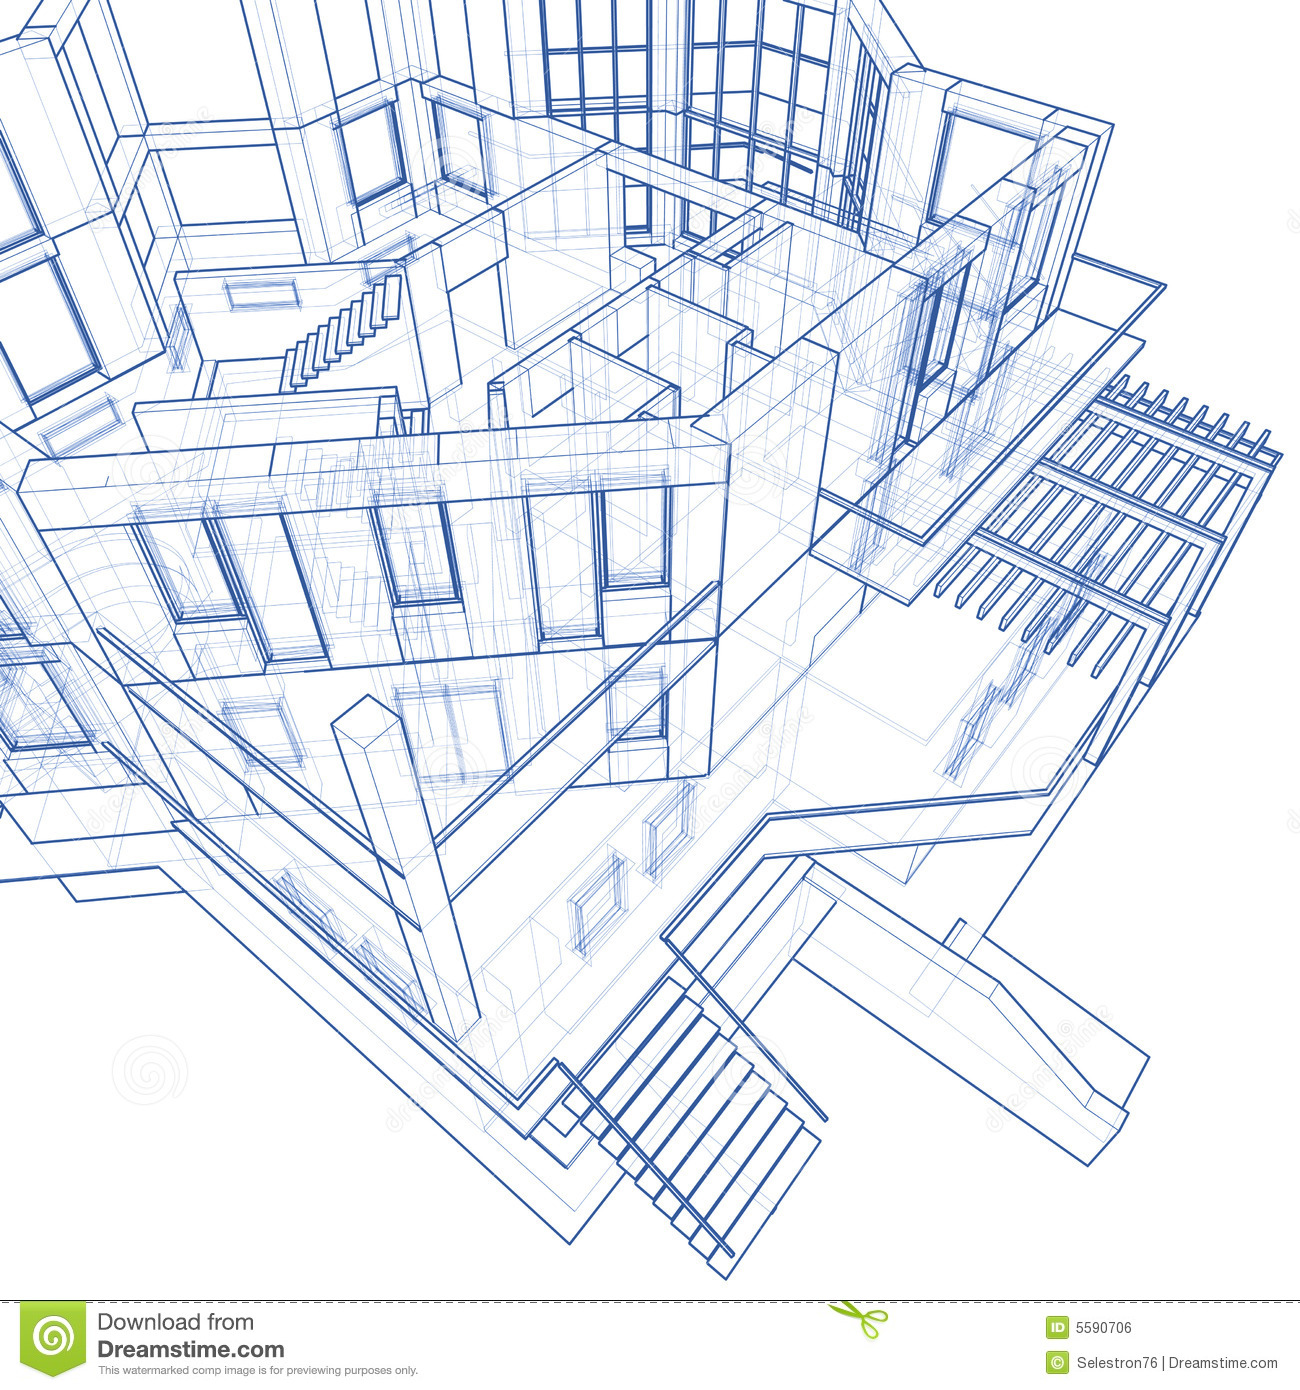 House architecture blueprint royalty free stock image for Architecture design blueprint